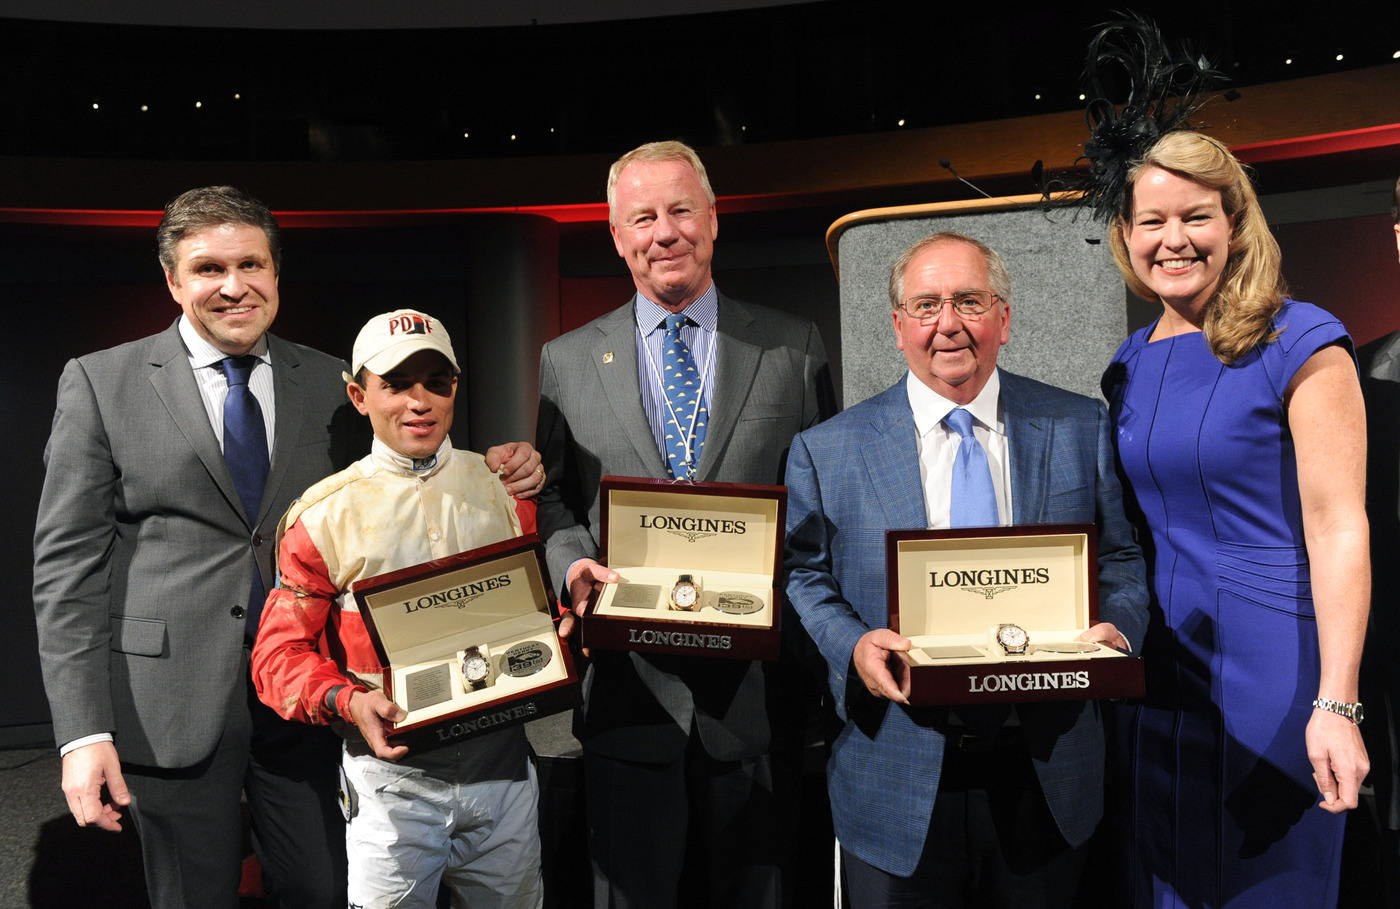 Longines Flat Racing Event: Longines awards timepieces to the winners of the Kentucky Derby 2